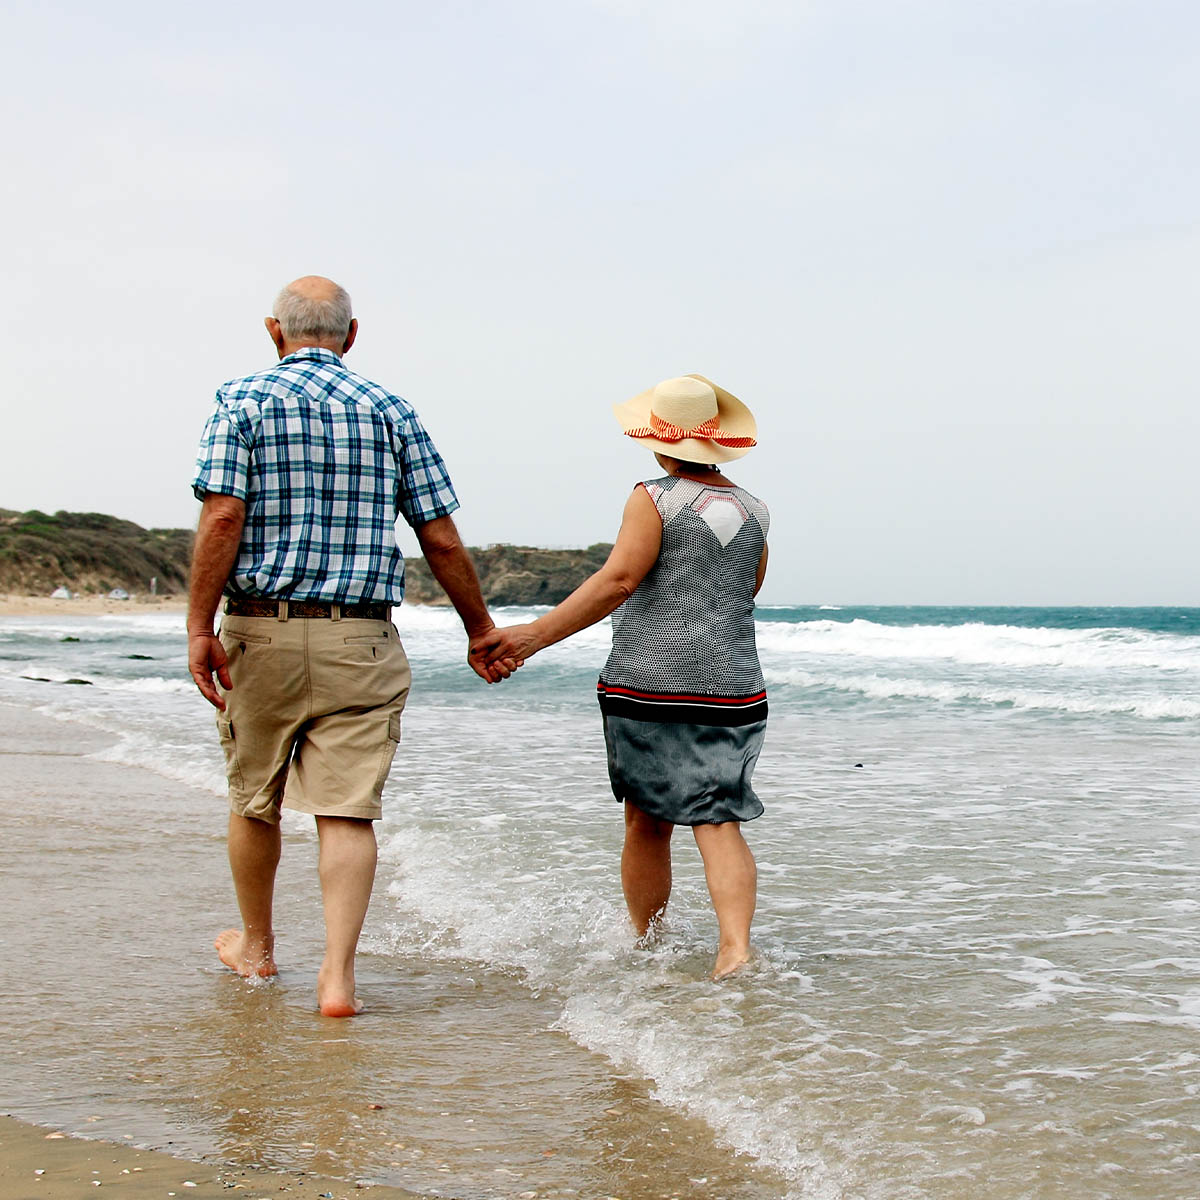 A mature aged couple walks along the water at the beach during a sunny day while holding hands.